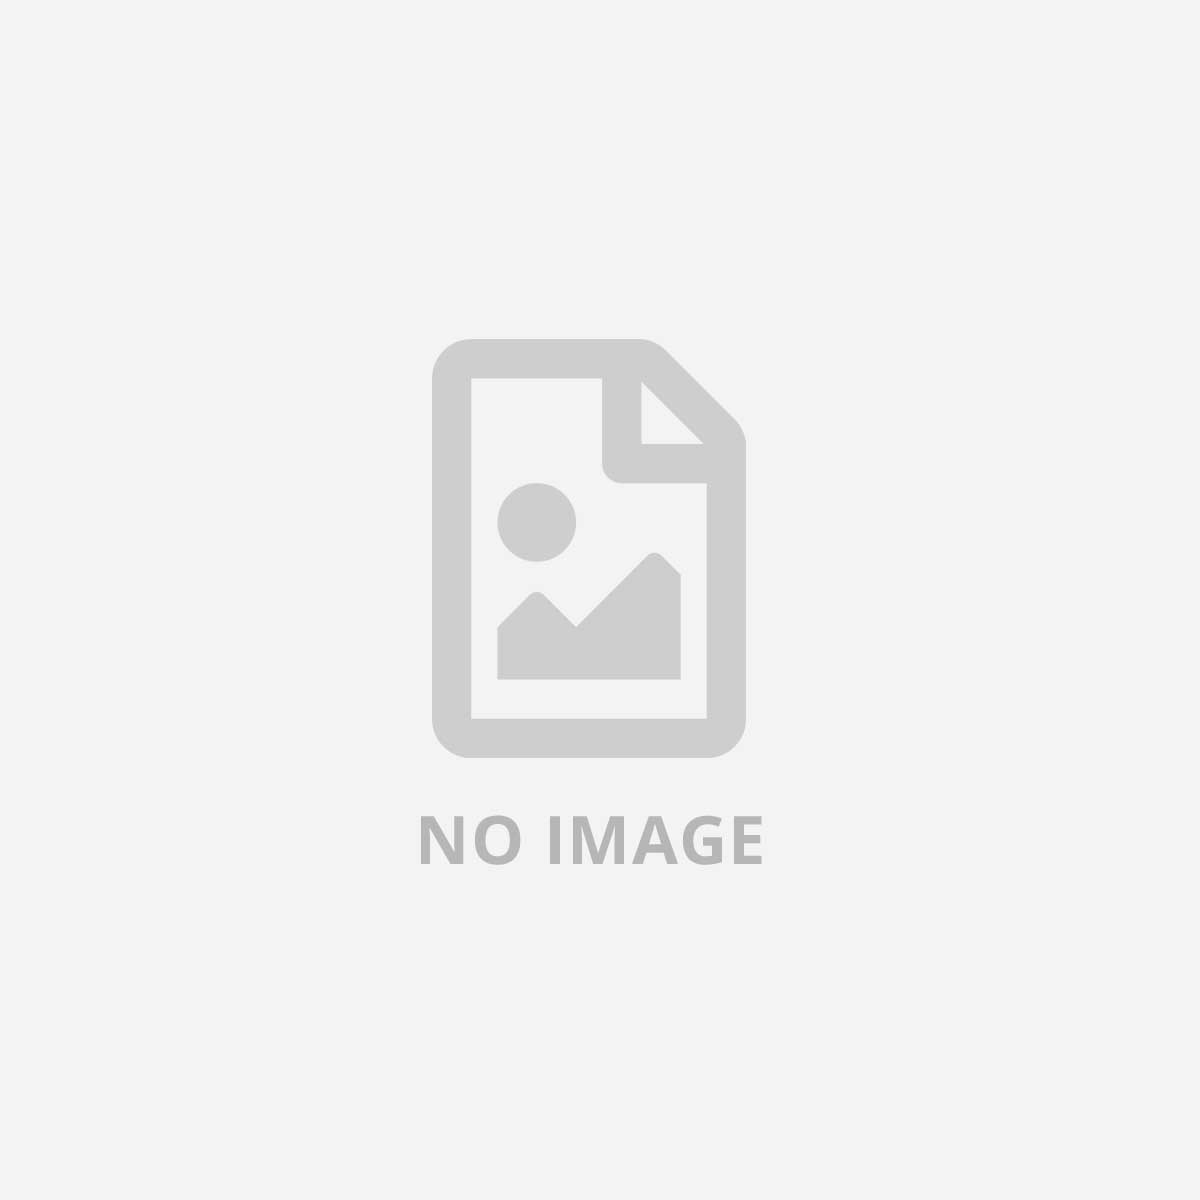 NILOX X320 GAMING MOUSE